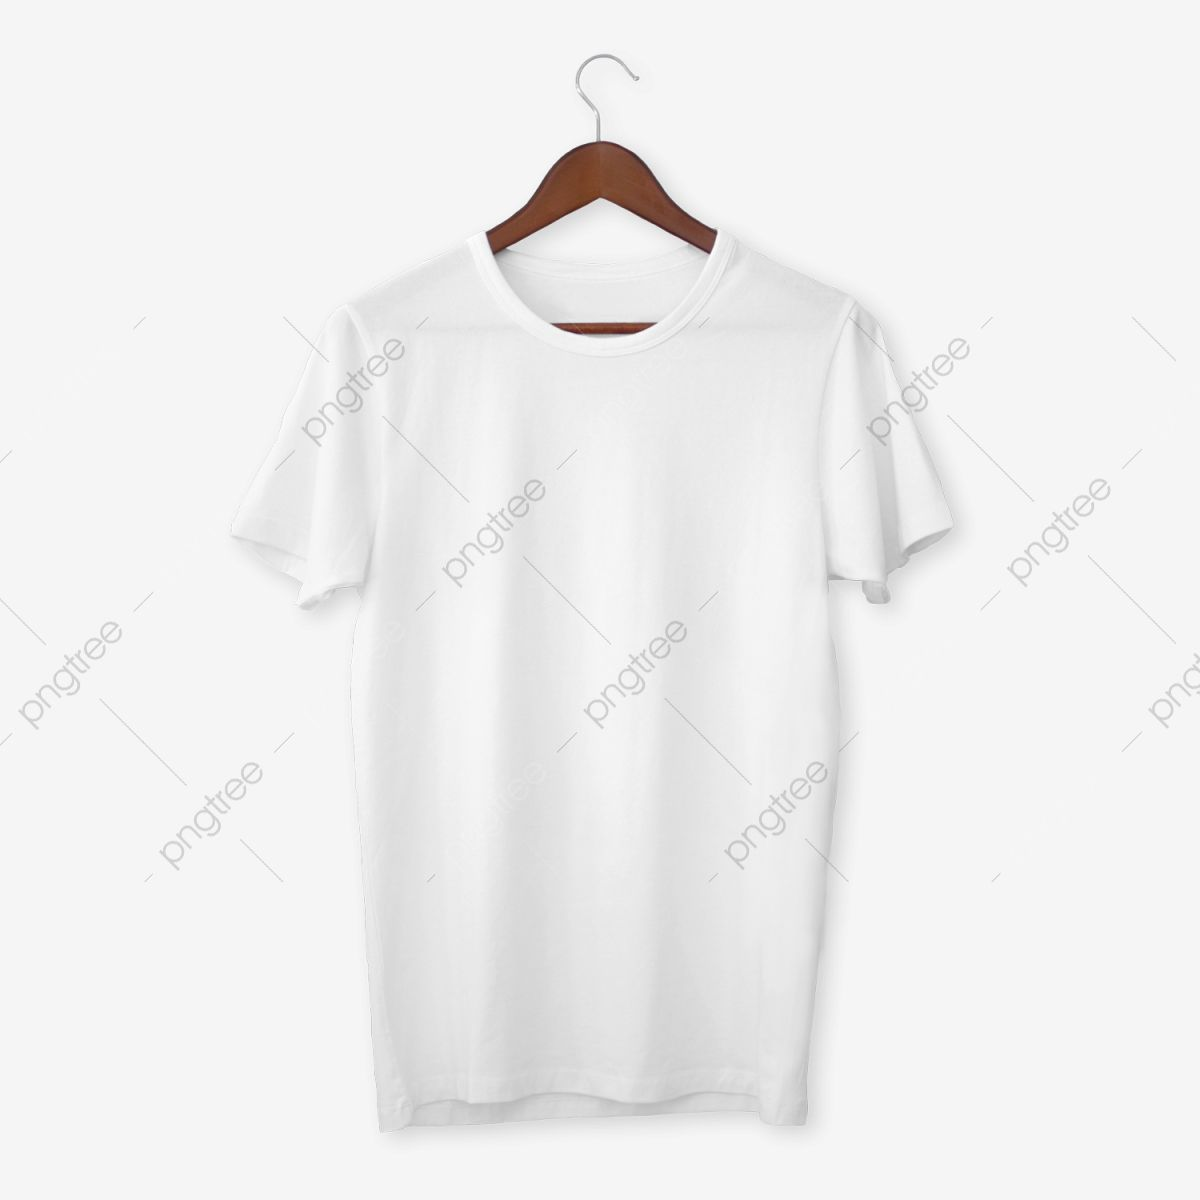 Download T Shirt Mockup Shirt T Shirts Mens Png Transparent Clipart Image And Psd File For Free Download Clipart Png Image Clipart